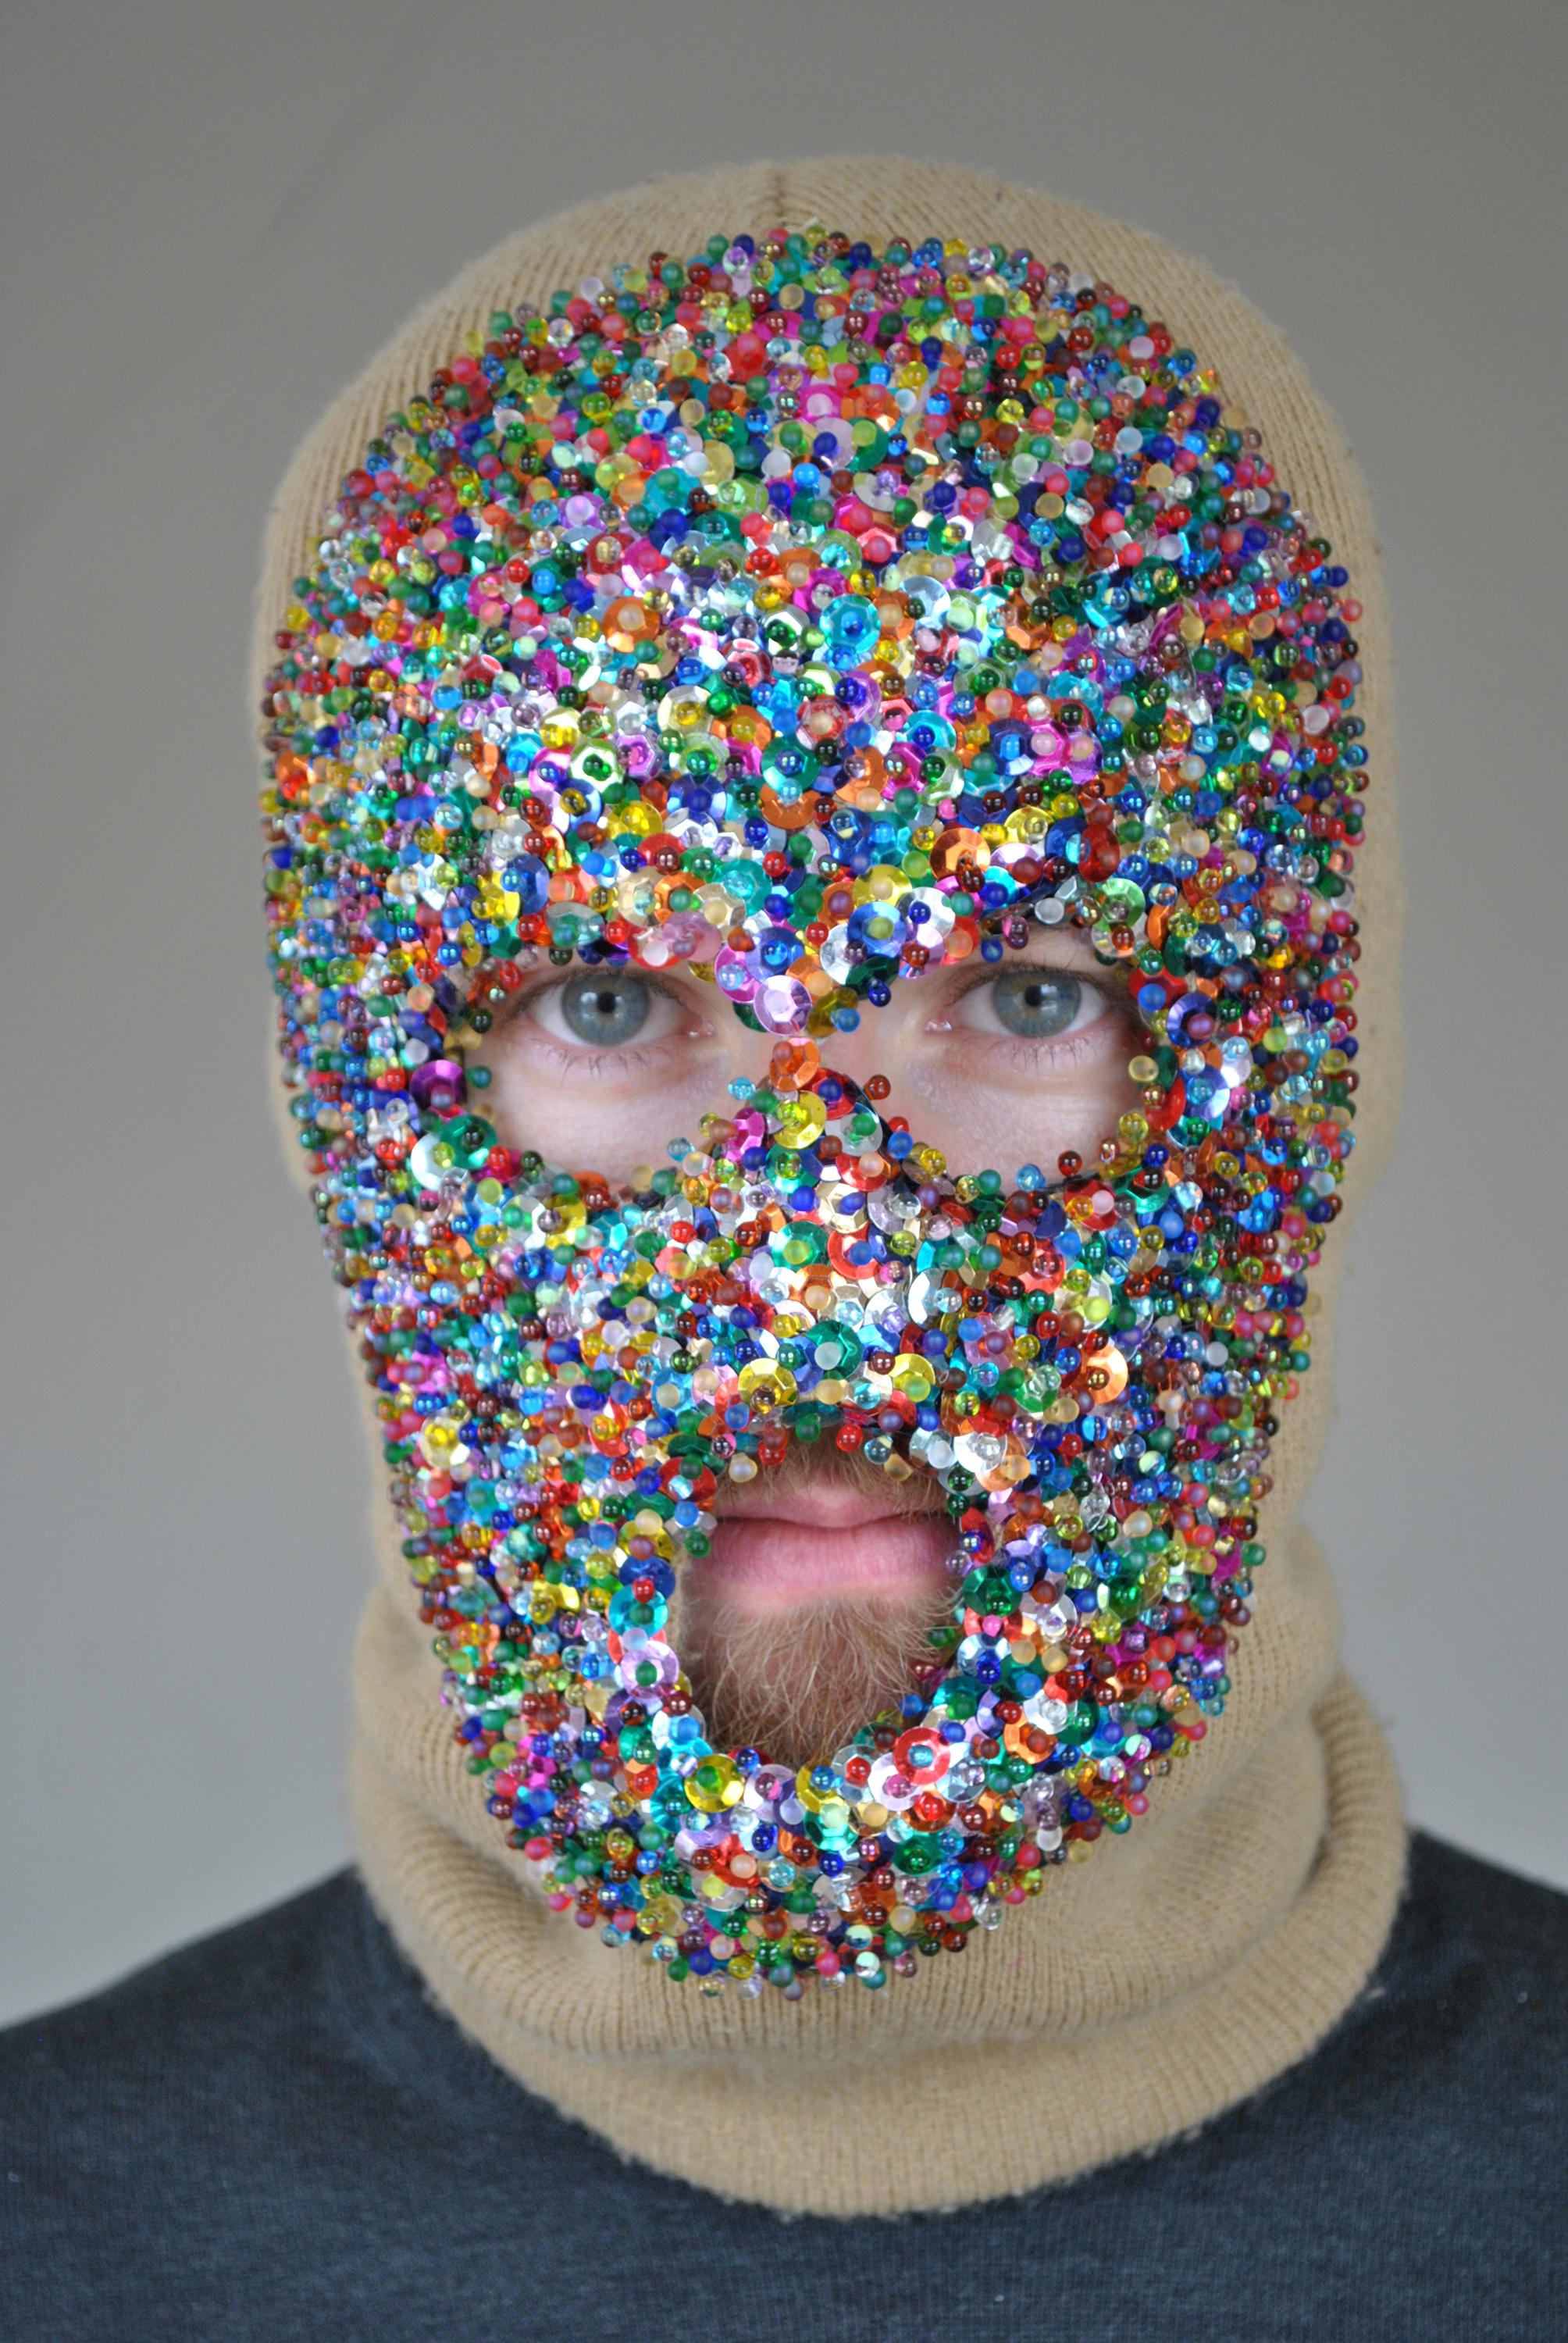 A man wearing a beige knit balaclava, the front of which is covered with multi-colored sequins